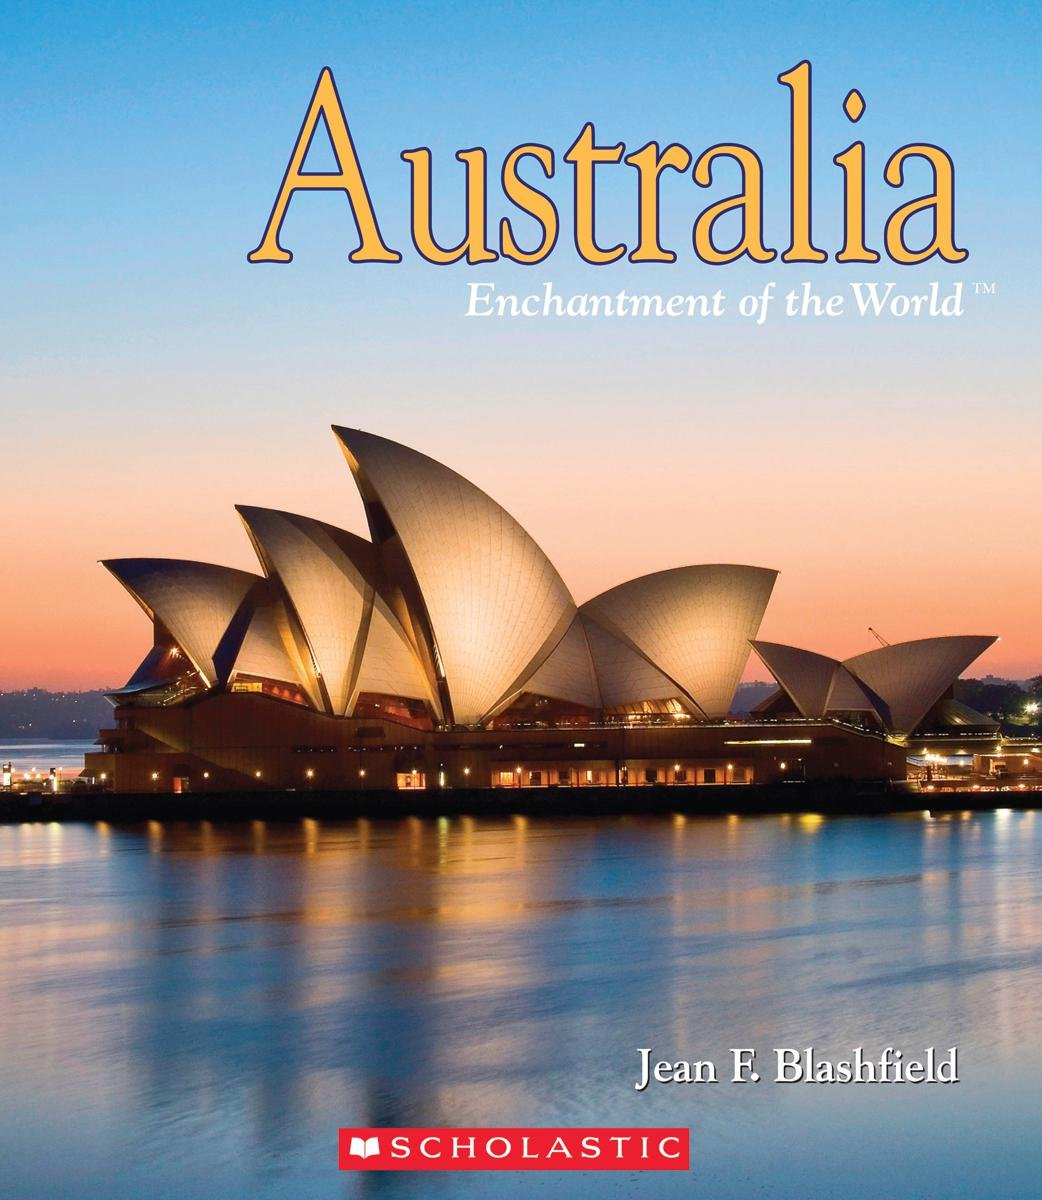 Australia (Enchantment of the World, Second Series)